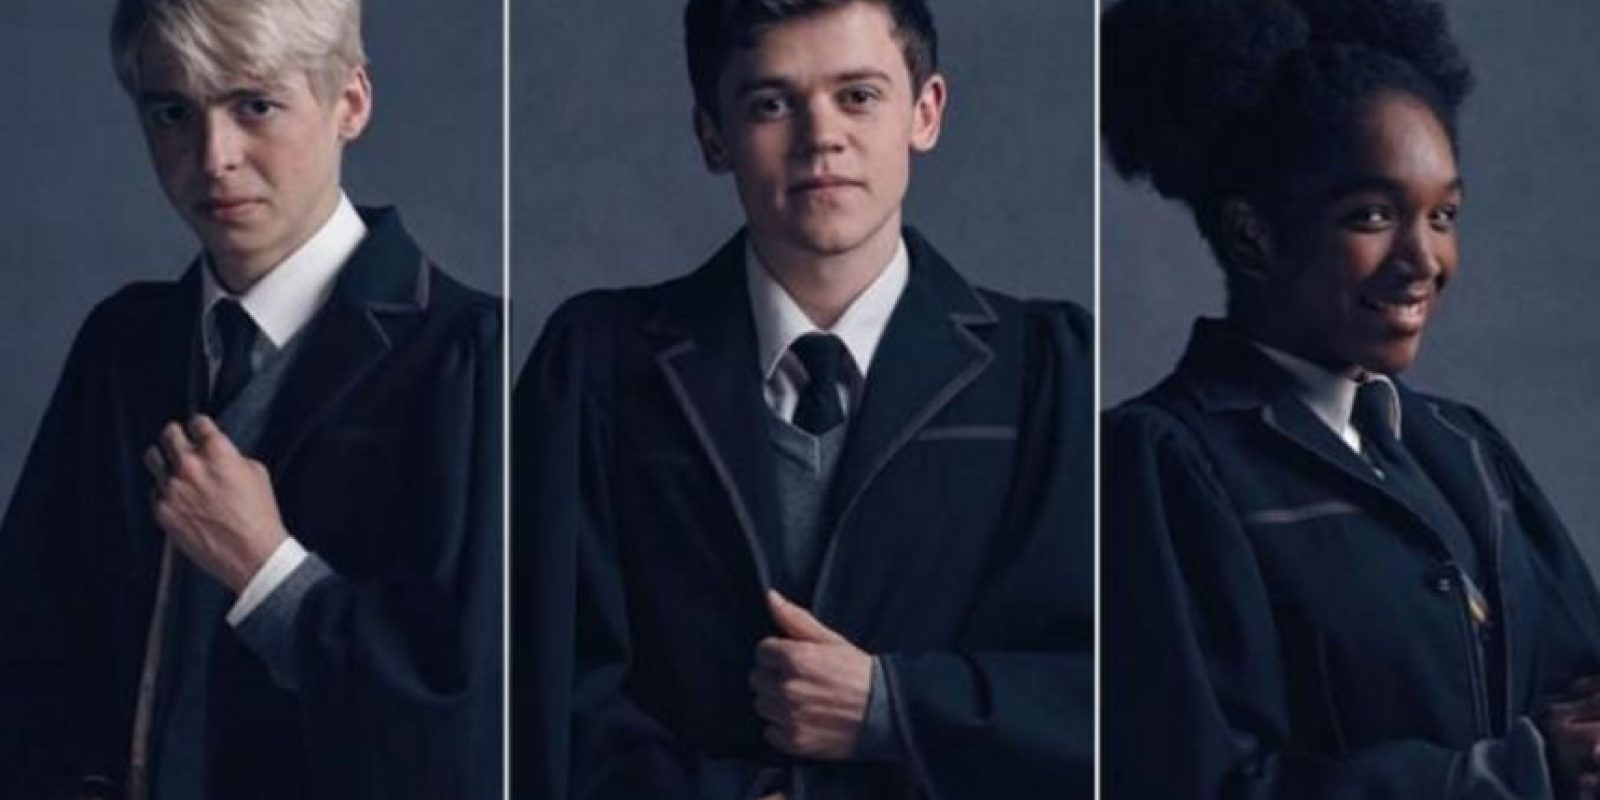 Los protagonistas de la nueva obra de Harry Potter. Foto: London Palace Theatre